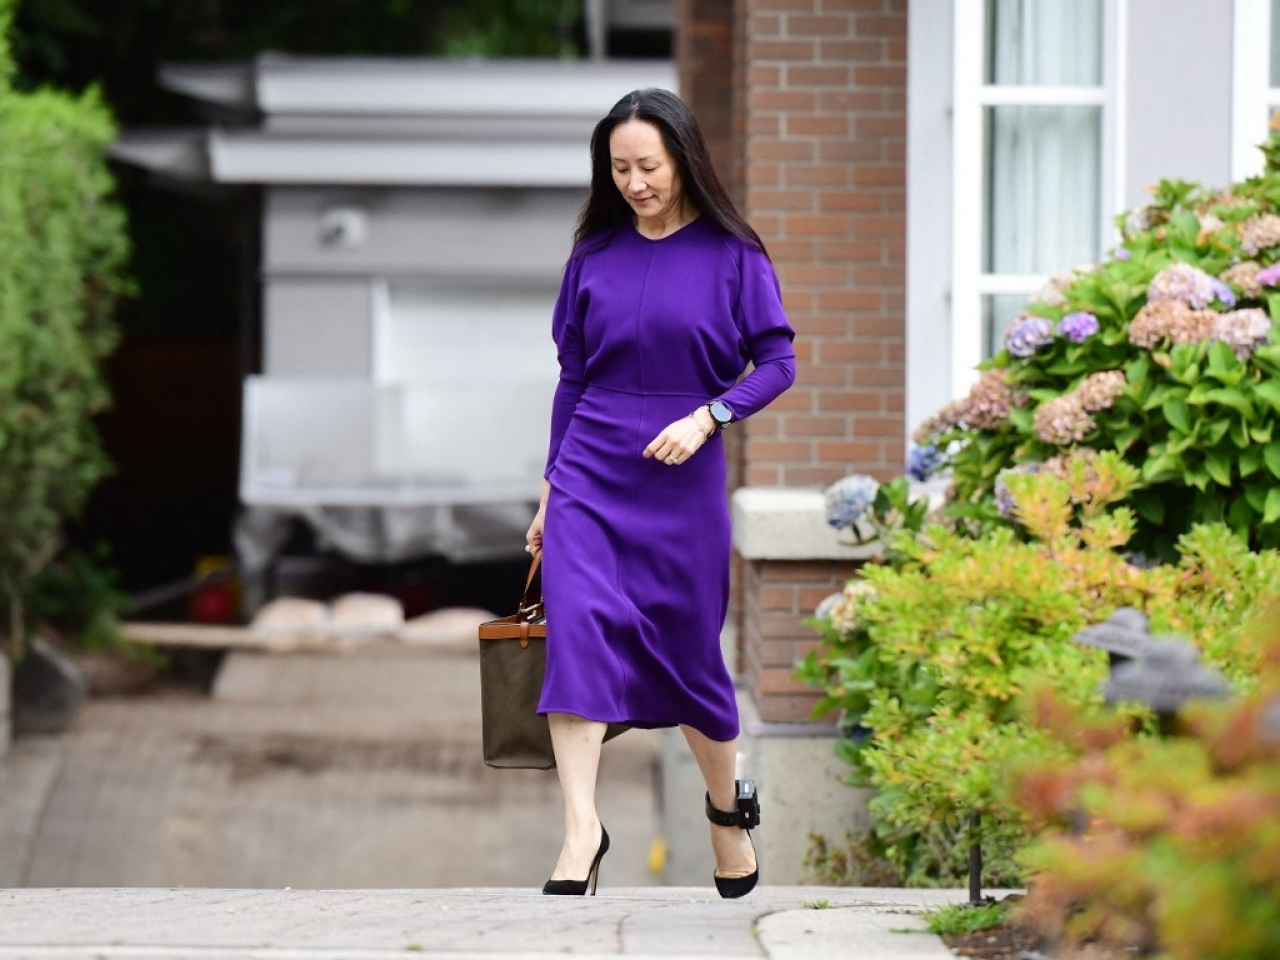 A report says the United States is prepared to end an extradition request against Meng Wanzhou if she pleads guilty and pays a hefty fine. File photo: AFP